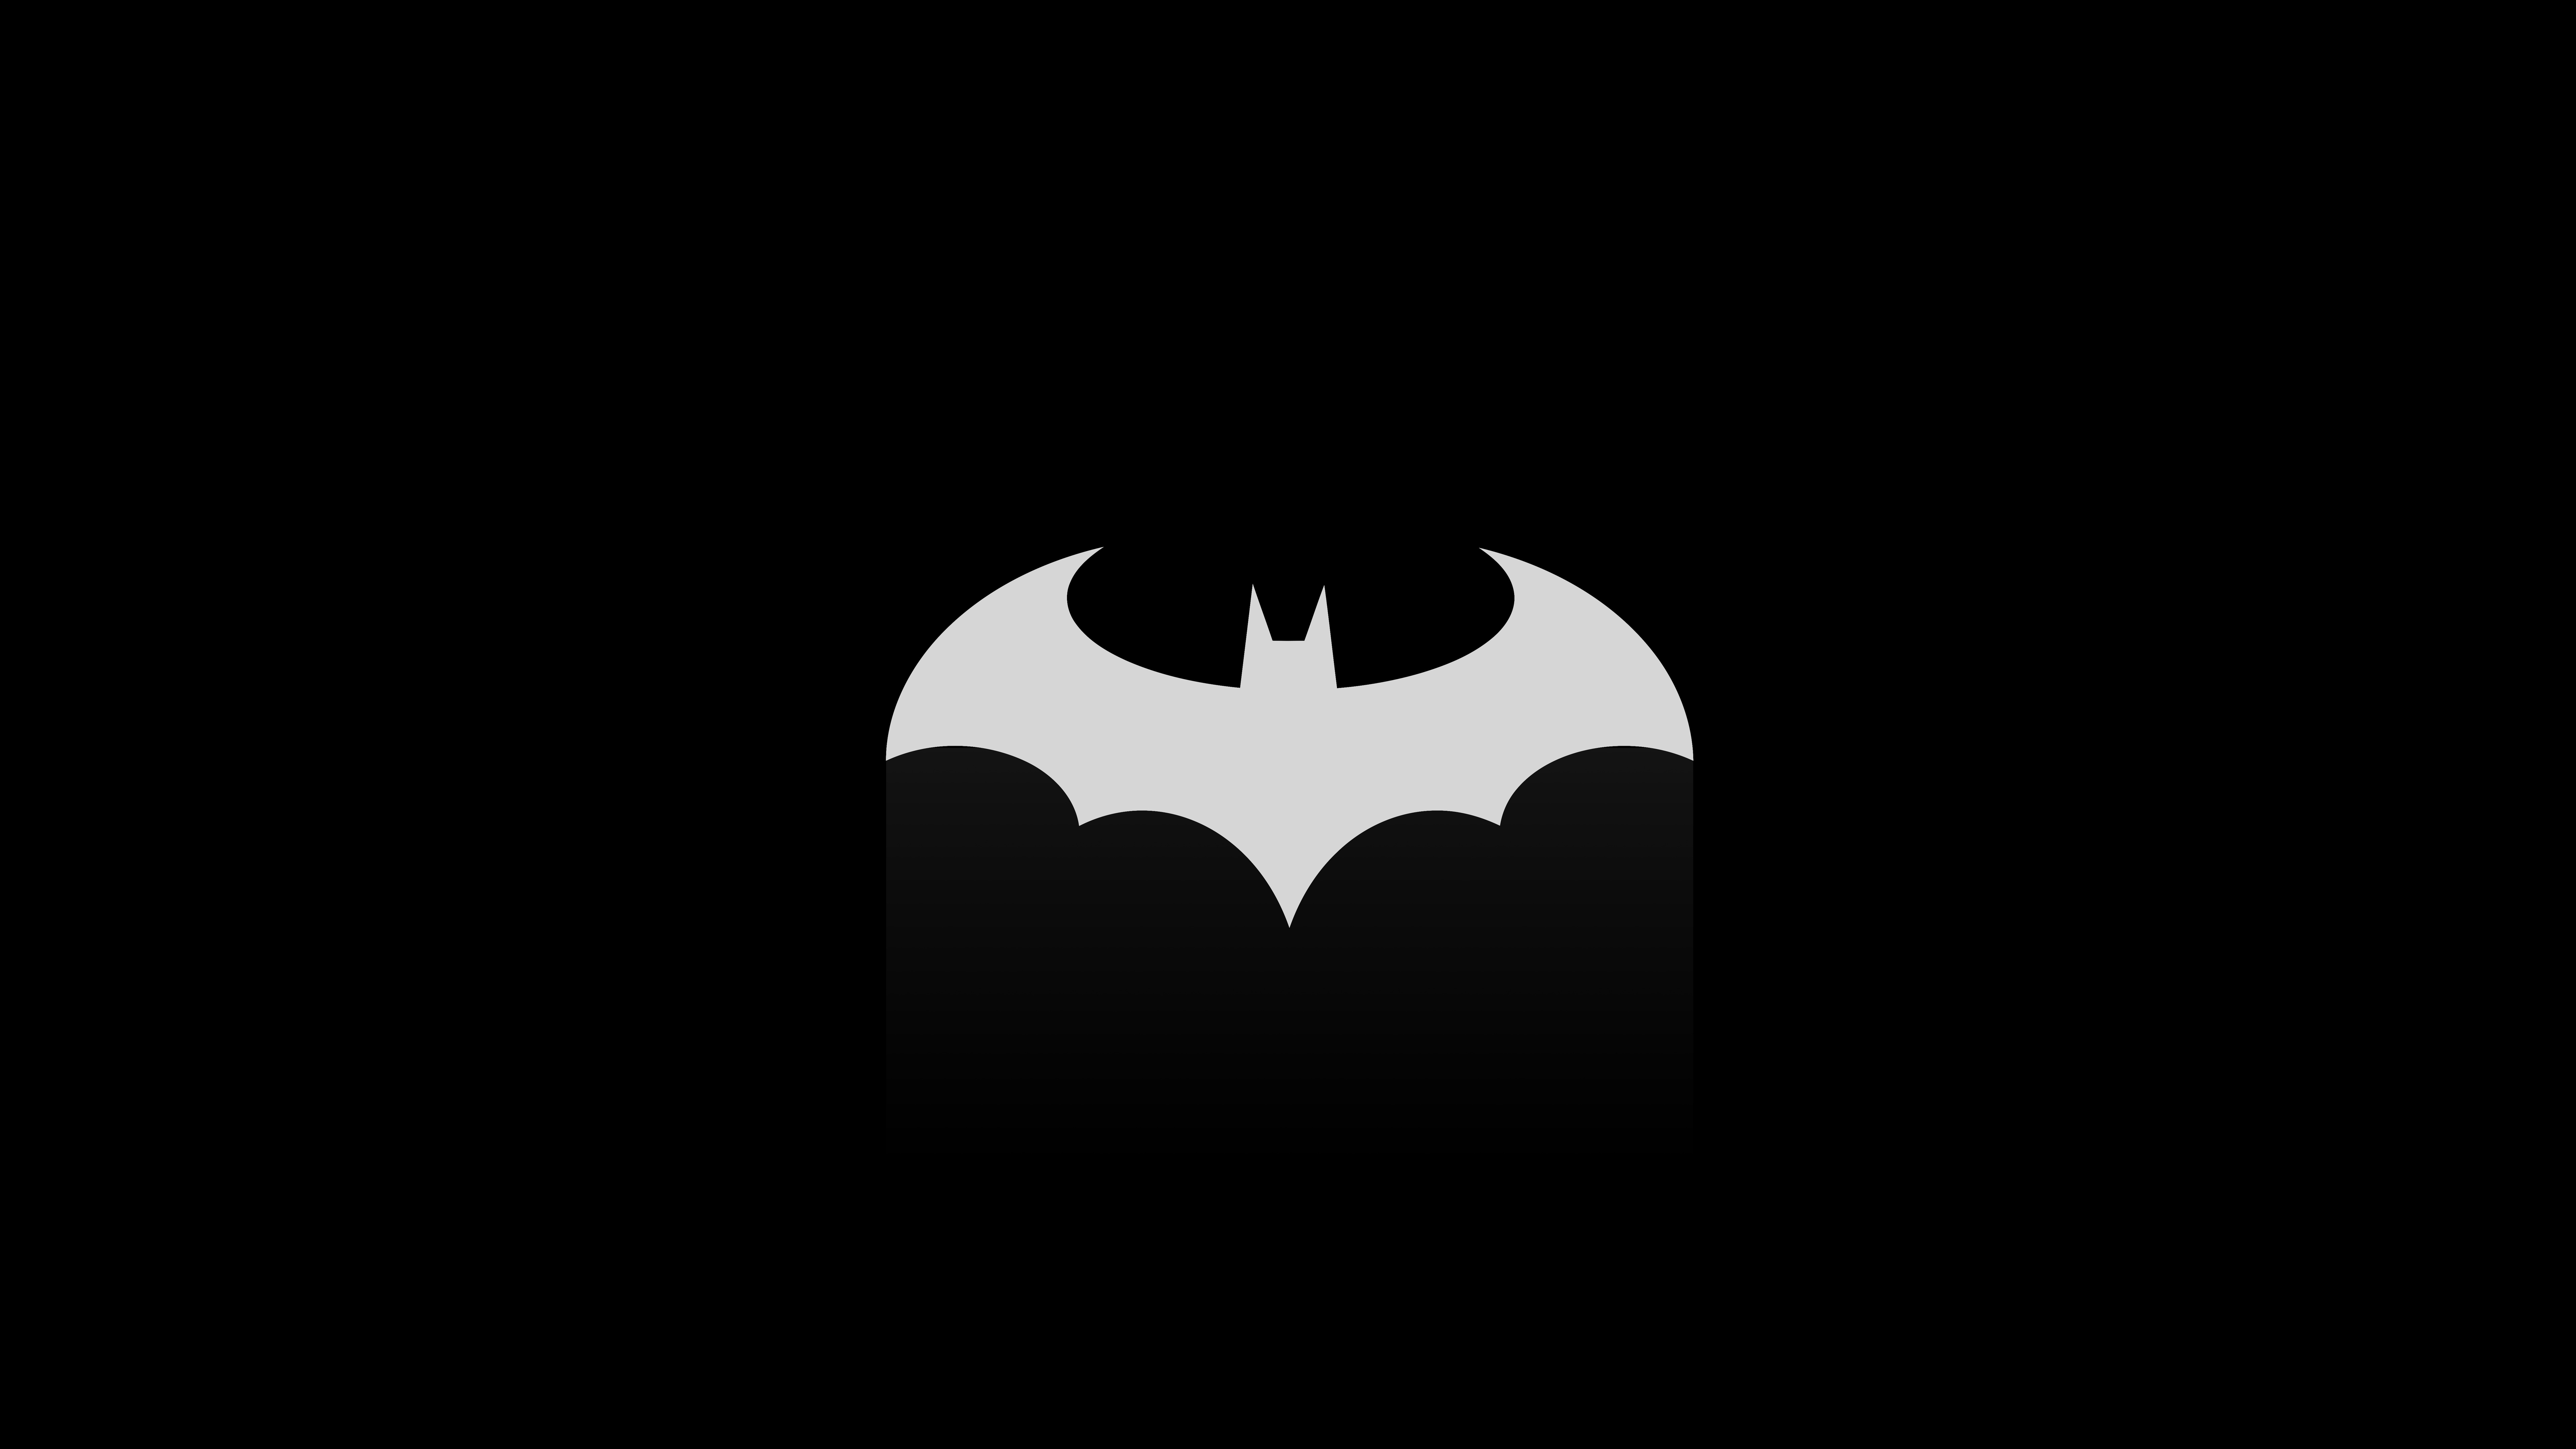 batman-logo-10k-24.jpg